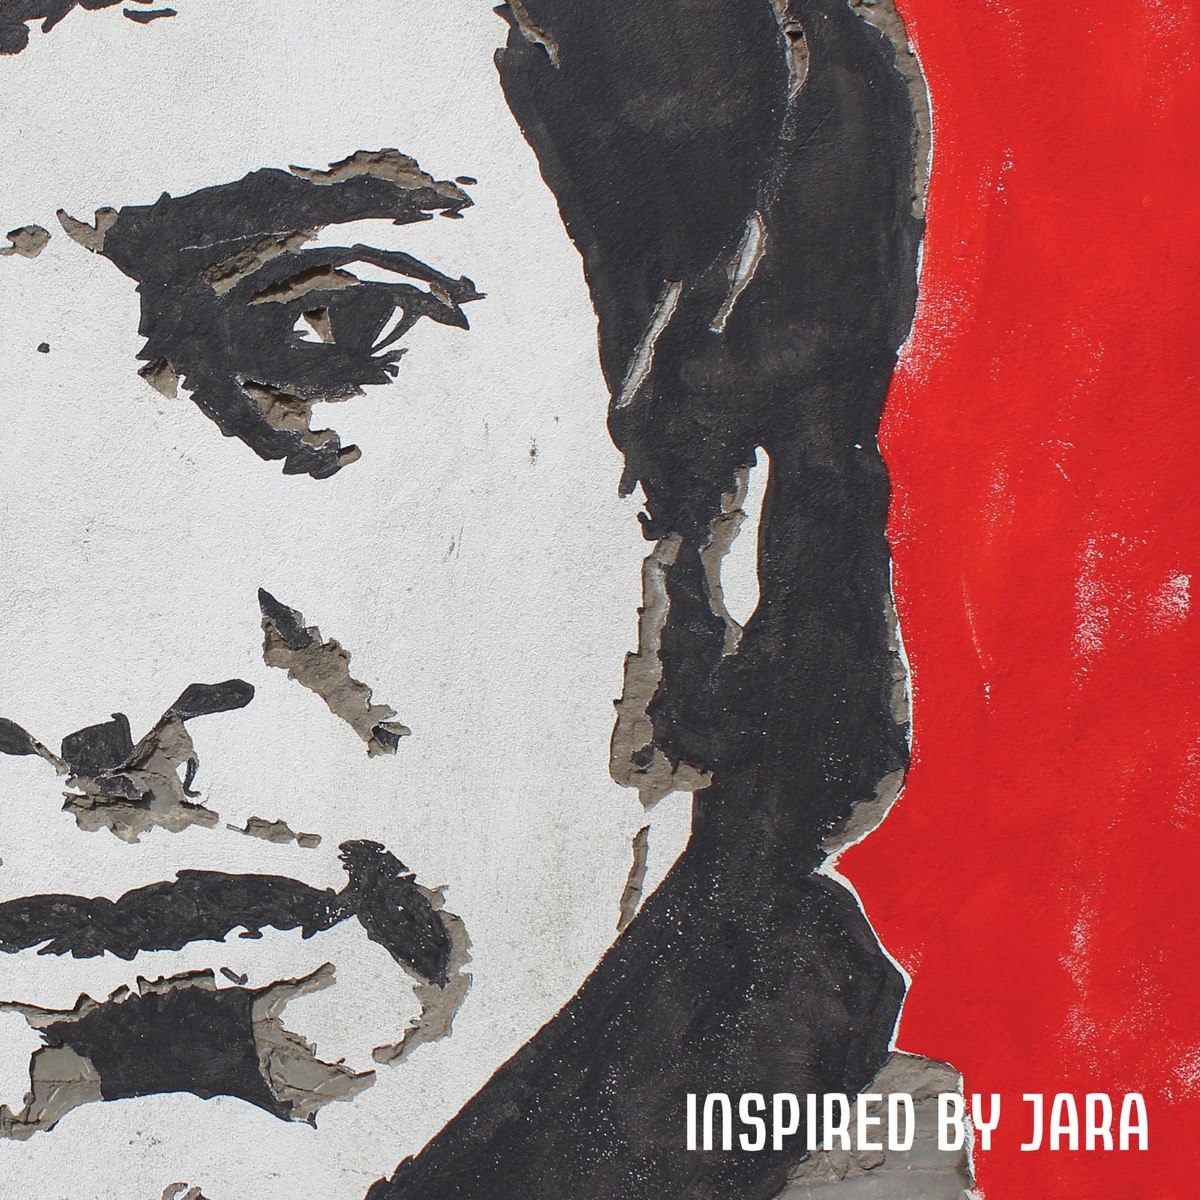 Inspired by Jara: Coming Soon